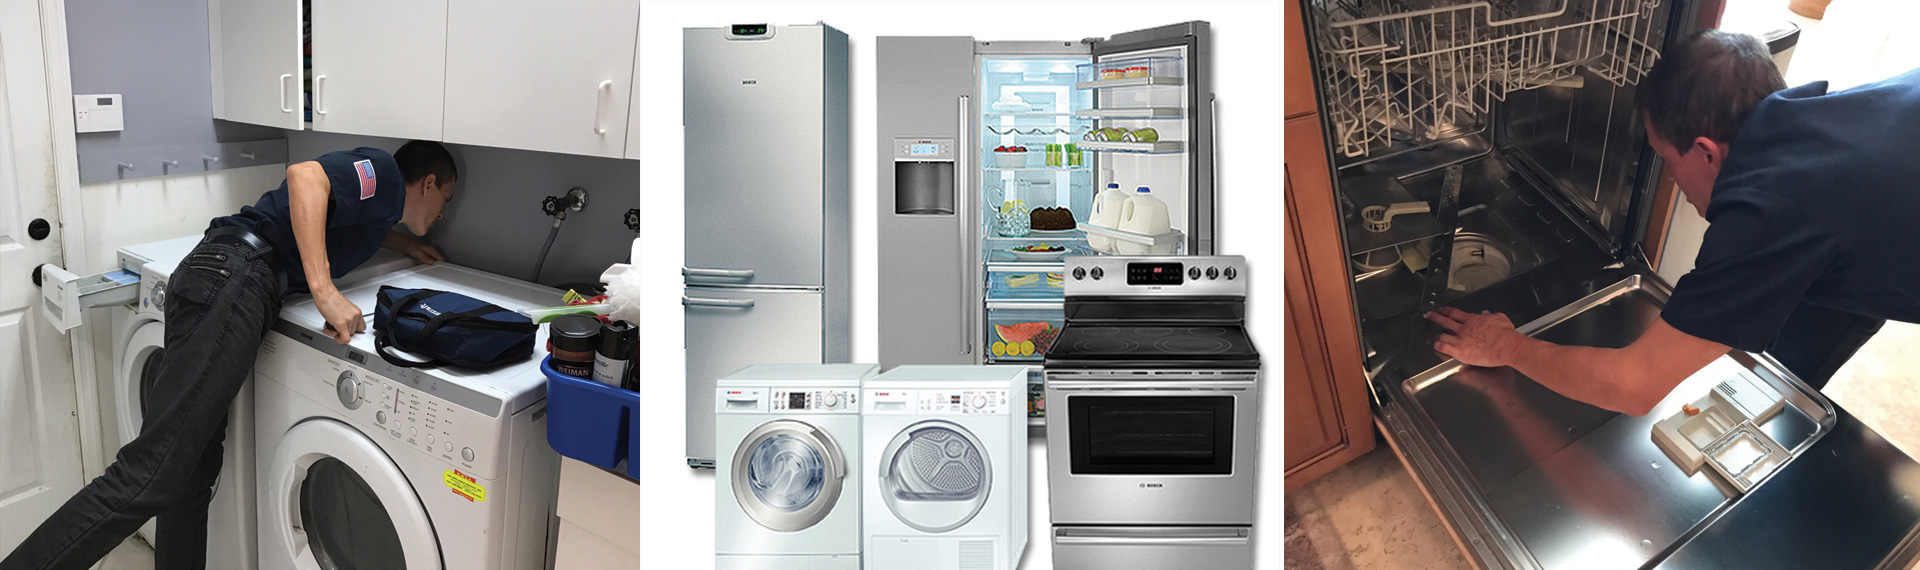 1A Appliance Service Coral Springs FL